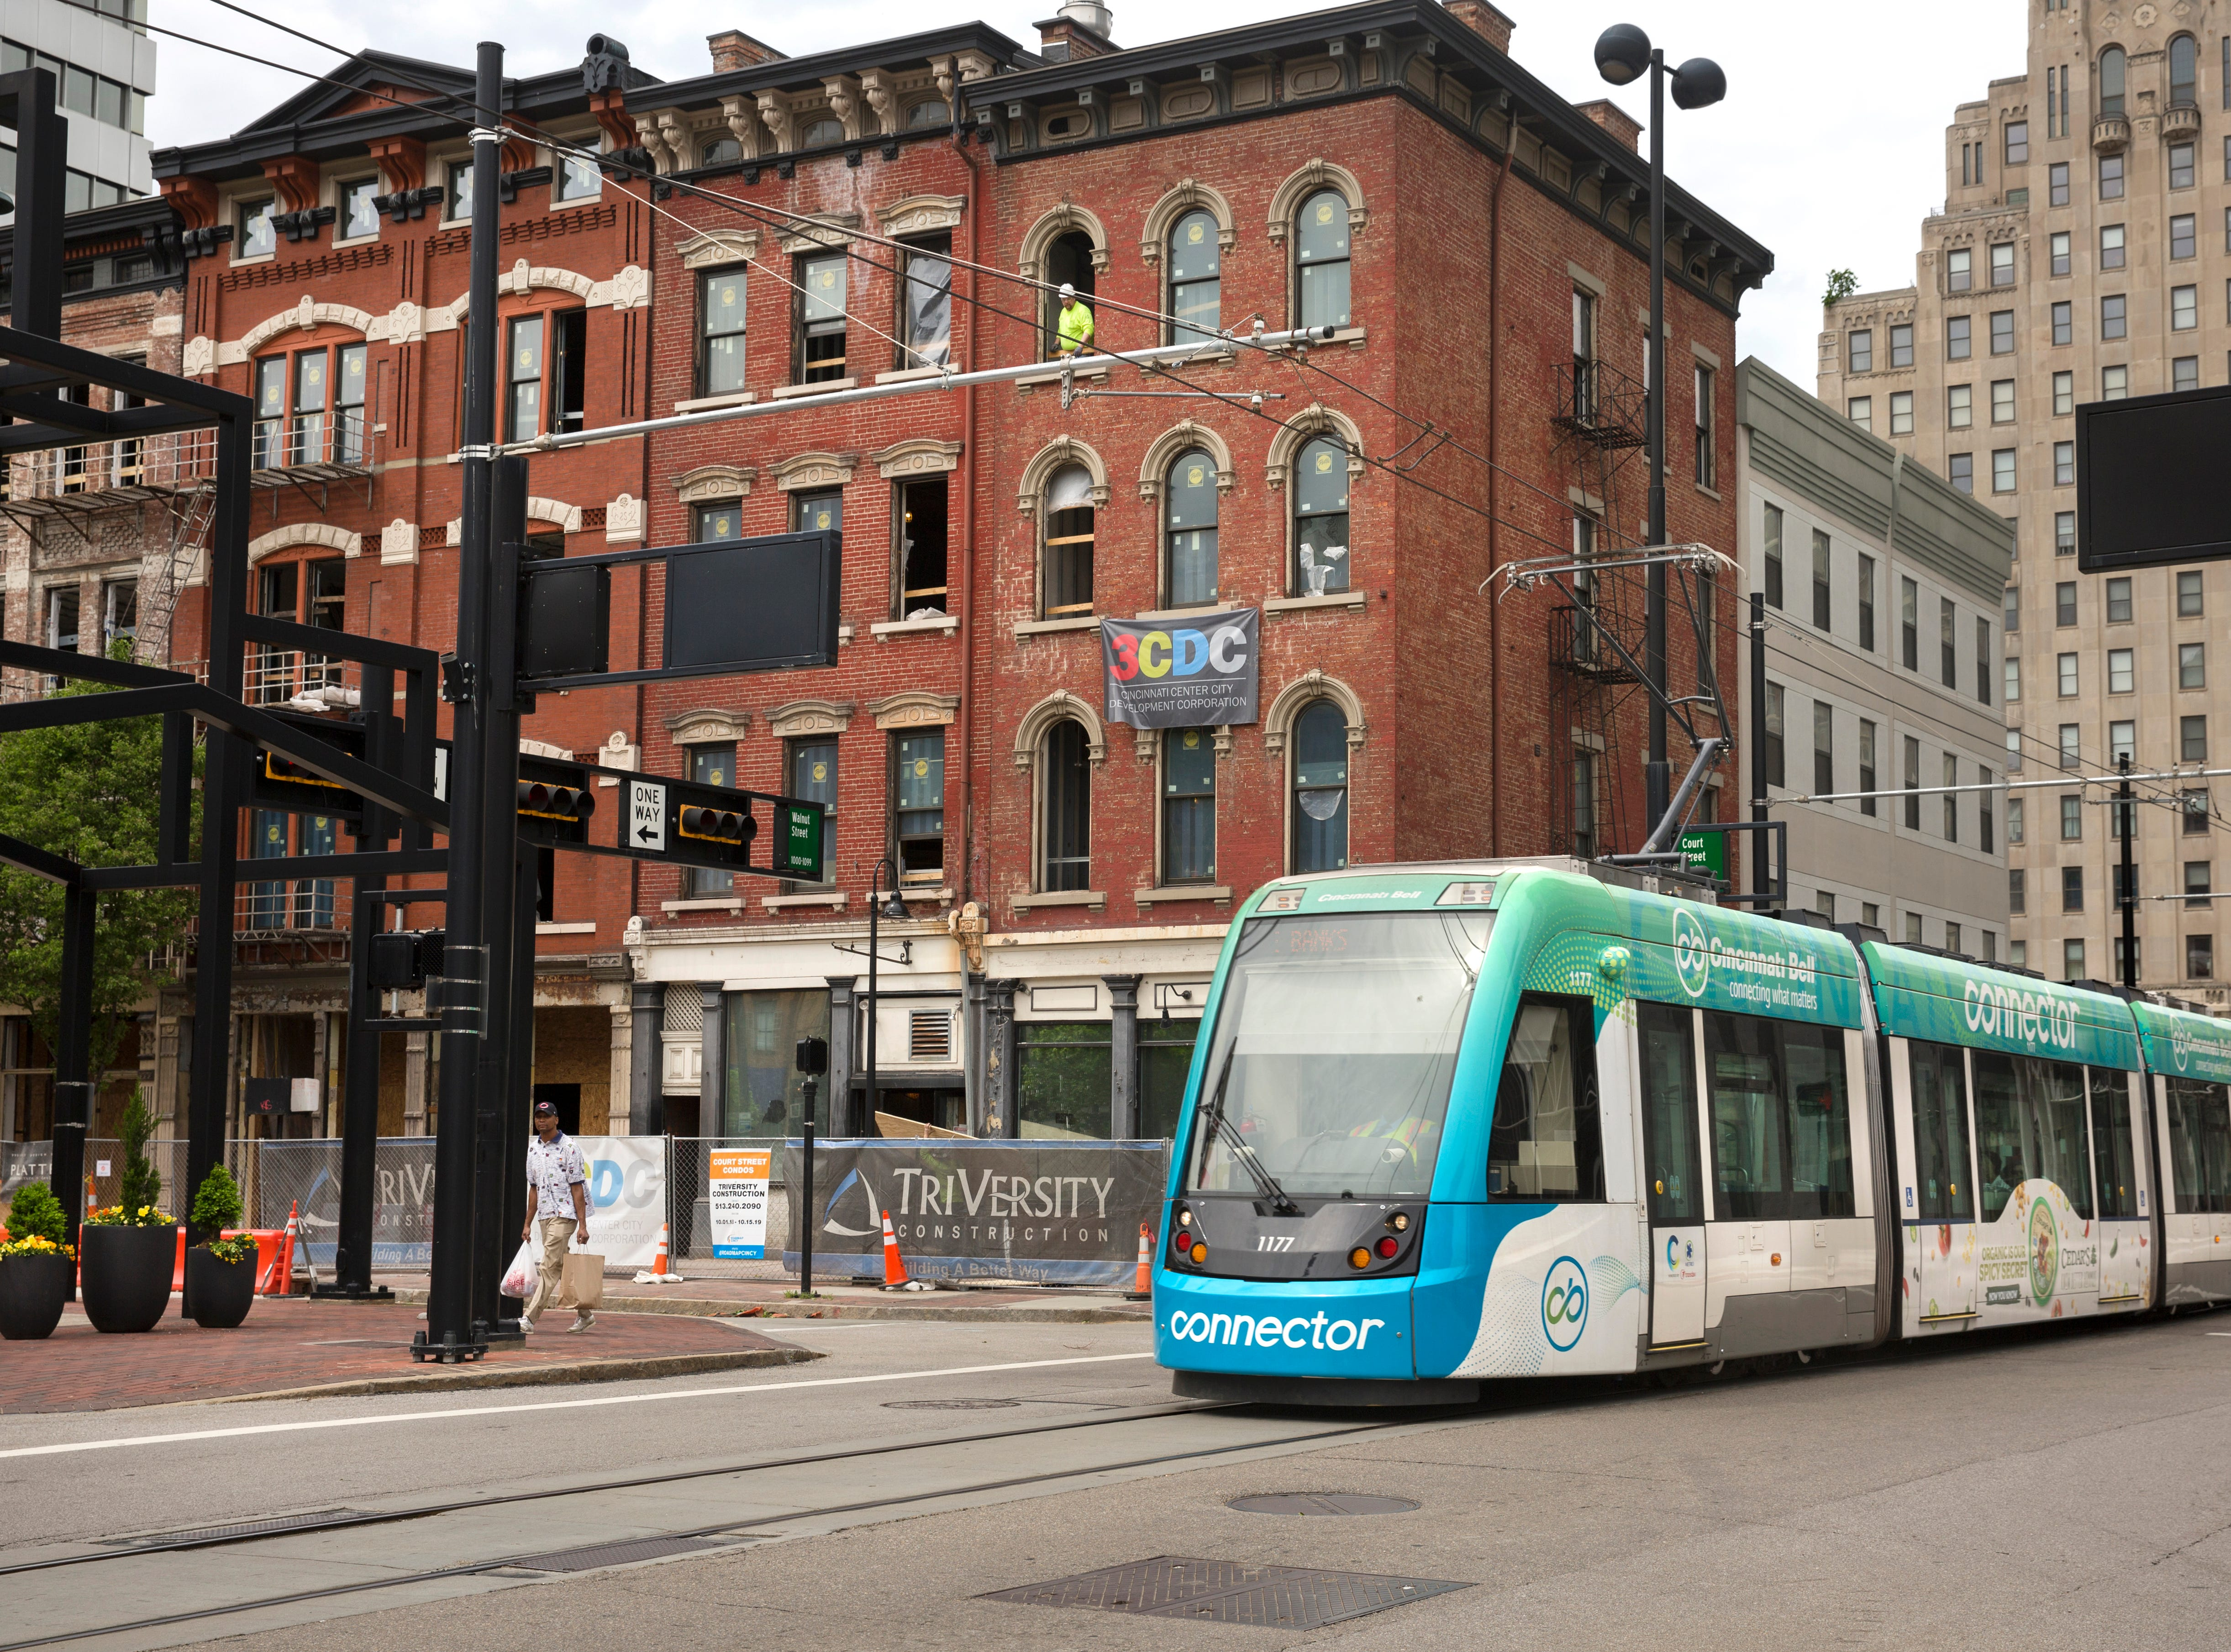 The Cincinnati Bell Connector makes its way down Walnut Street crossing Court Street in downtown Cincinnati, May 1, 2019. At left are the Court Street Condos. It's 3CDC's first residential project south of Central Parkway. The six historic buildings will have 16 condo units with an average price of $313,000. The ground floor will be commercial space. Just down the street at Court and Walnut, Kroger is building a 18-story mixed-use development that includes a grocery story, a 560-space parking garage and 139 apartments.